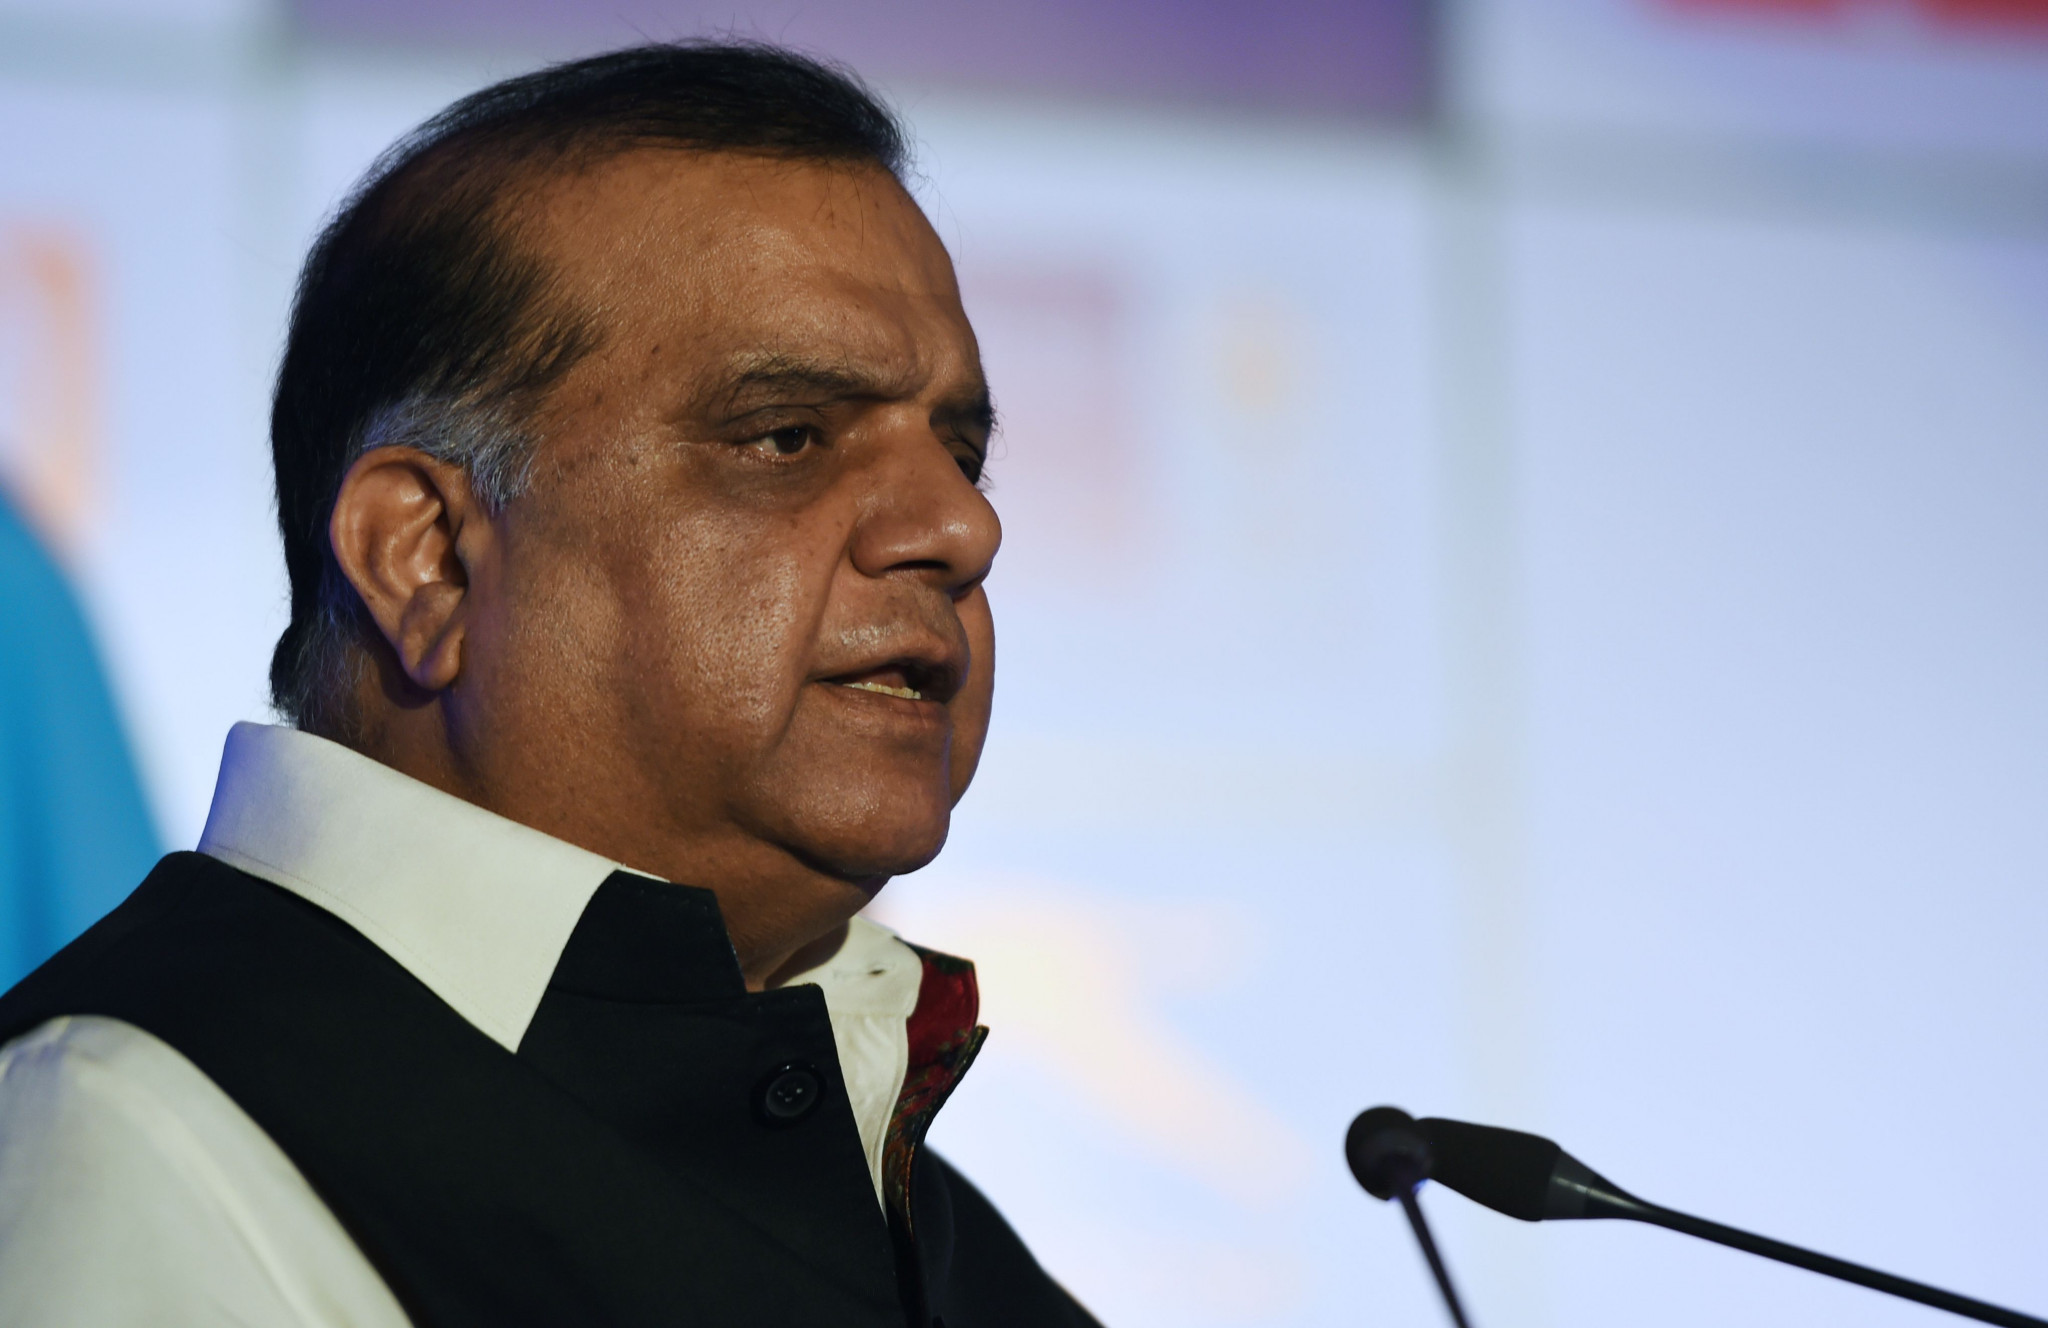 The CGF are set to be hosted by IOA President Narinder Batra, who has talked up a potential boycott ©Getty Images